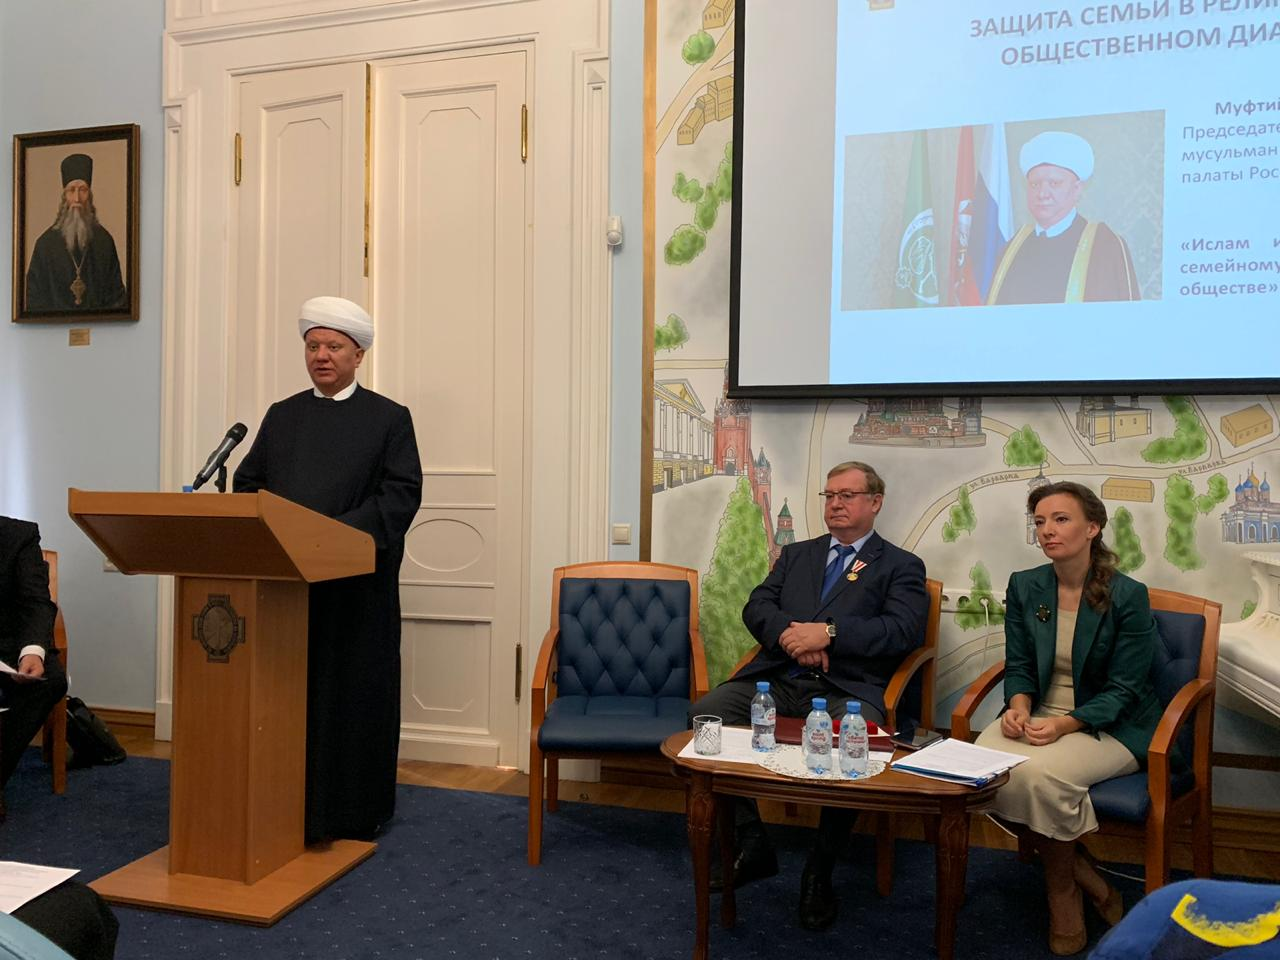 MUFTI ALBIR-KHAZRAT KRGANOV SPEAKS AT INTERFAITH CONFERENCE DEVOTED TO THE PROTECTION OF FAMILY VALUES